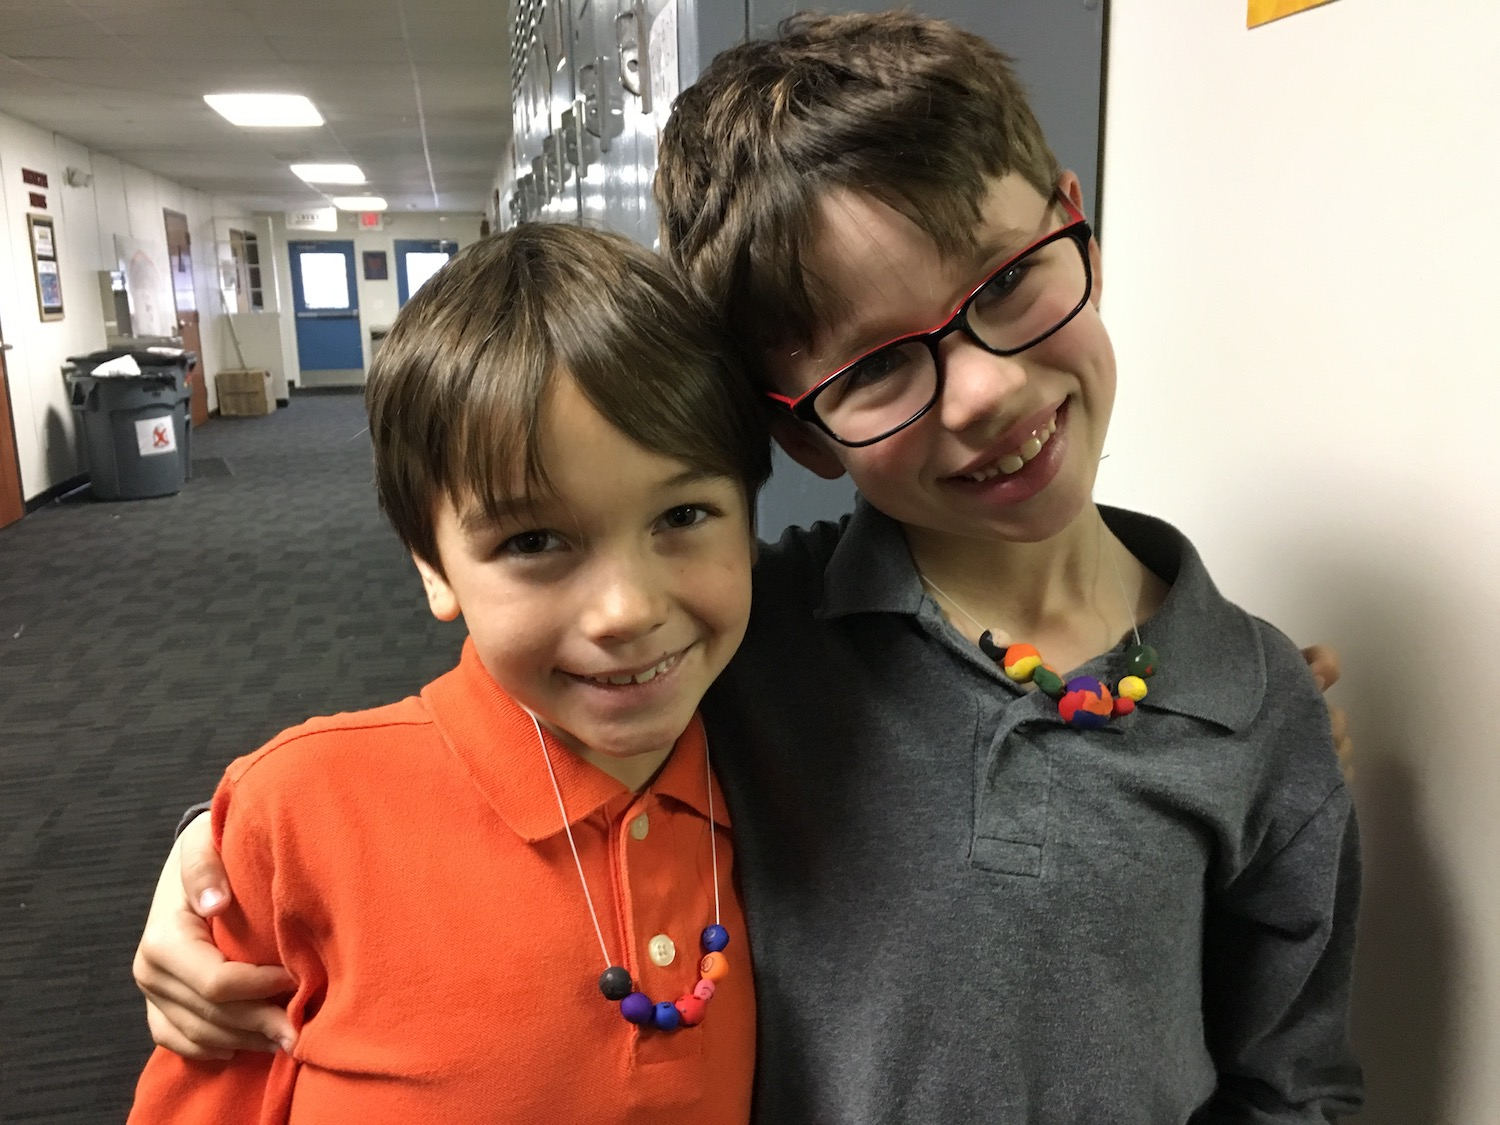 Stevie and Elijah sporting the handmade beads they created from clay in Accessorize class! Ms. Foster and I had fun working together in planning The Need for Beads (STEM class) and Accessorize. In The Need for Beads we worked on measuring string for bracelets and necklaces from the measurements last week. This gave students practice with working with inches and measuring with a tape measure. They also had to consider the extra materials needed for knots and space to get the jewelry off. These materials were then used to make the bracelets and necklaces in Accessorize class.